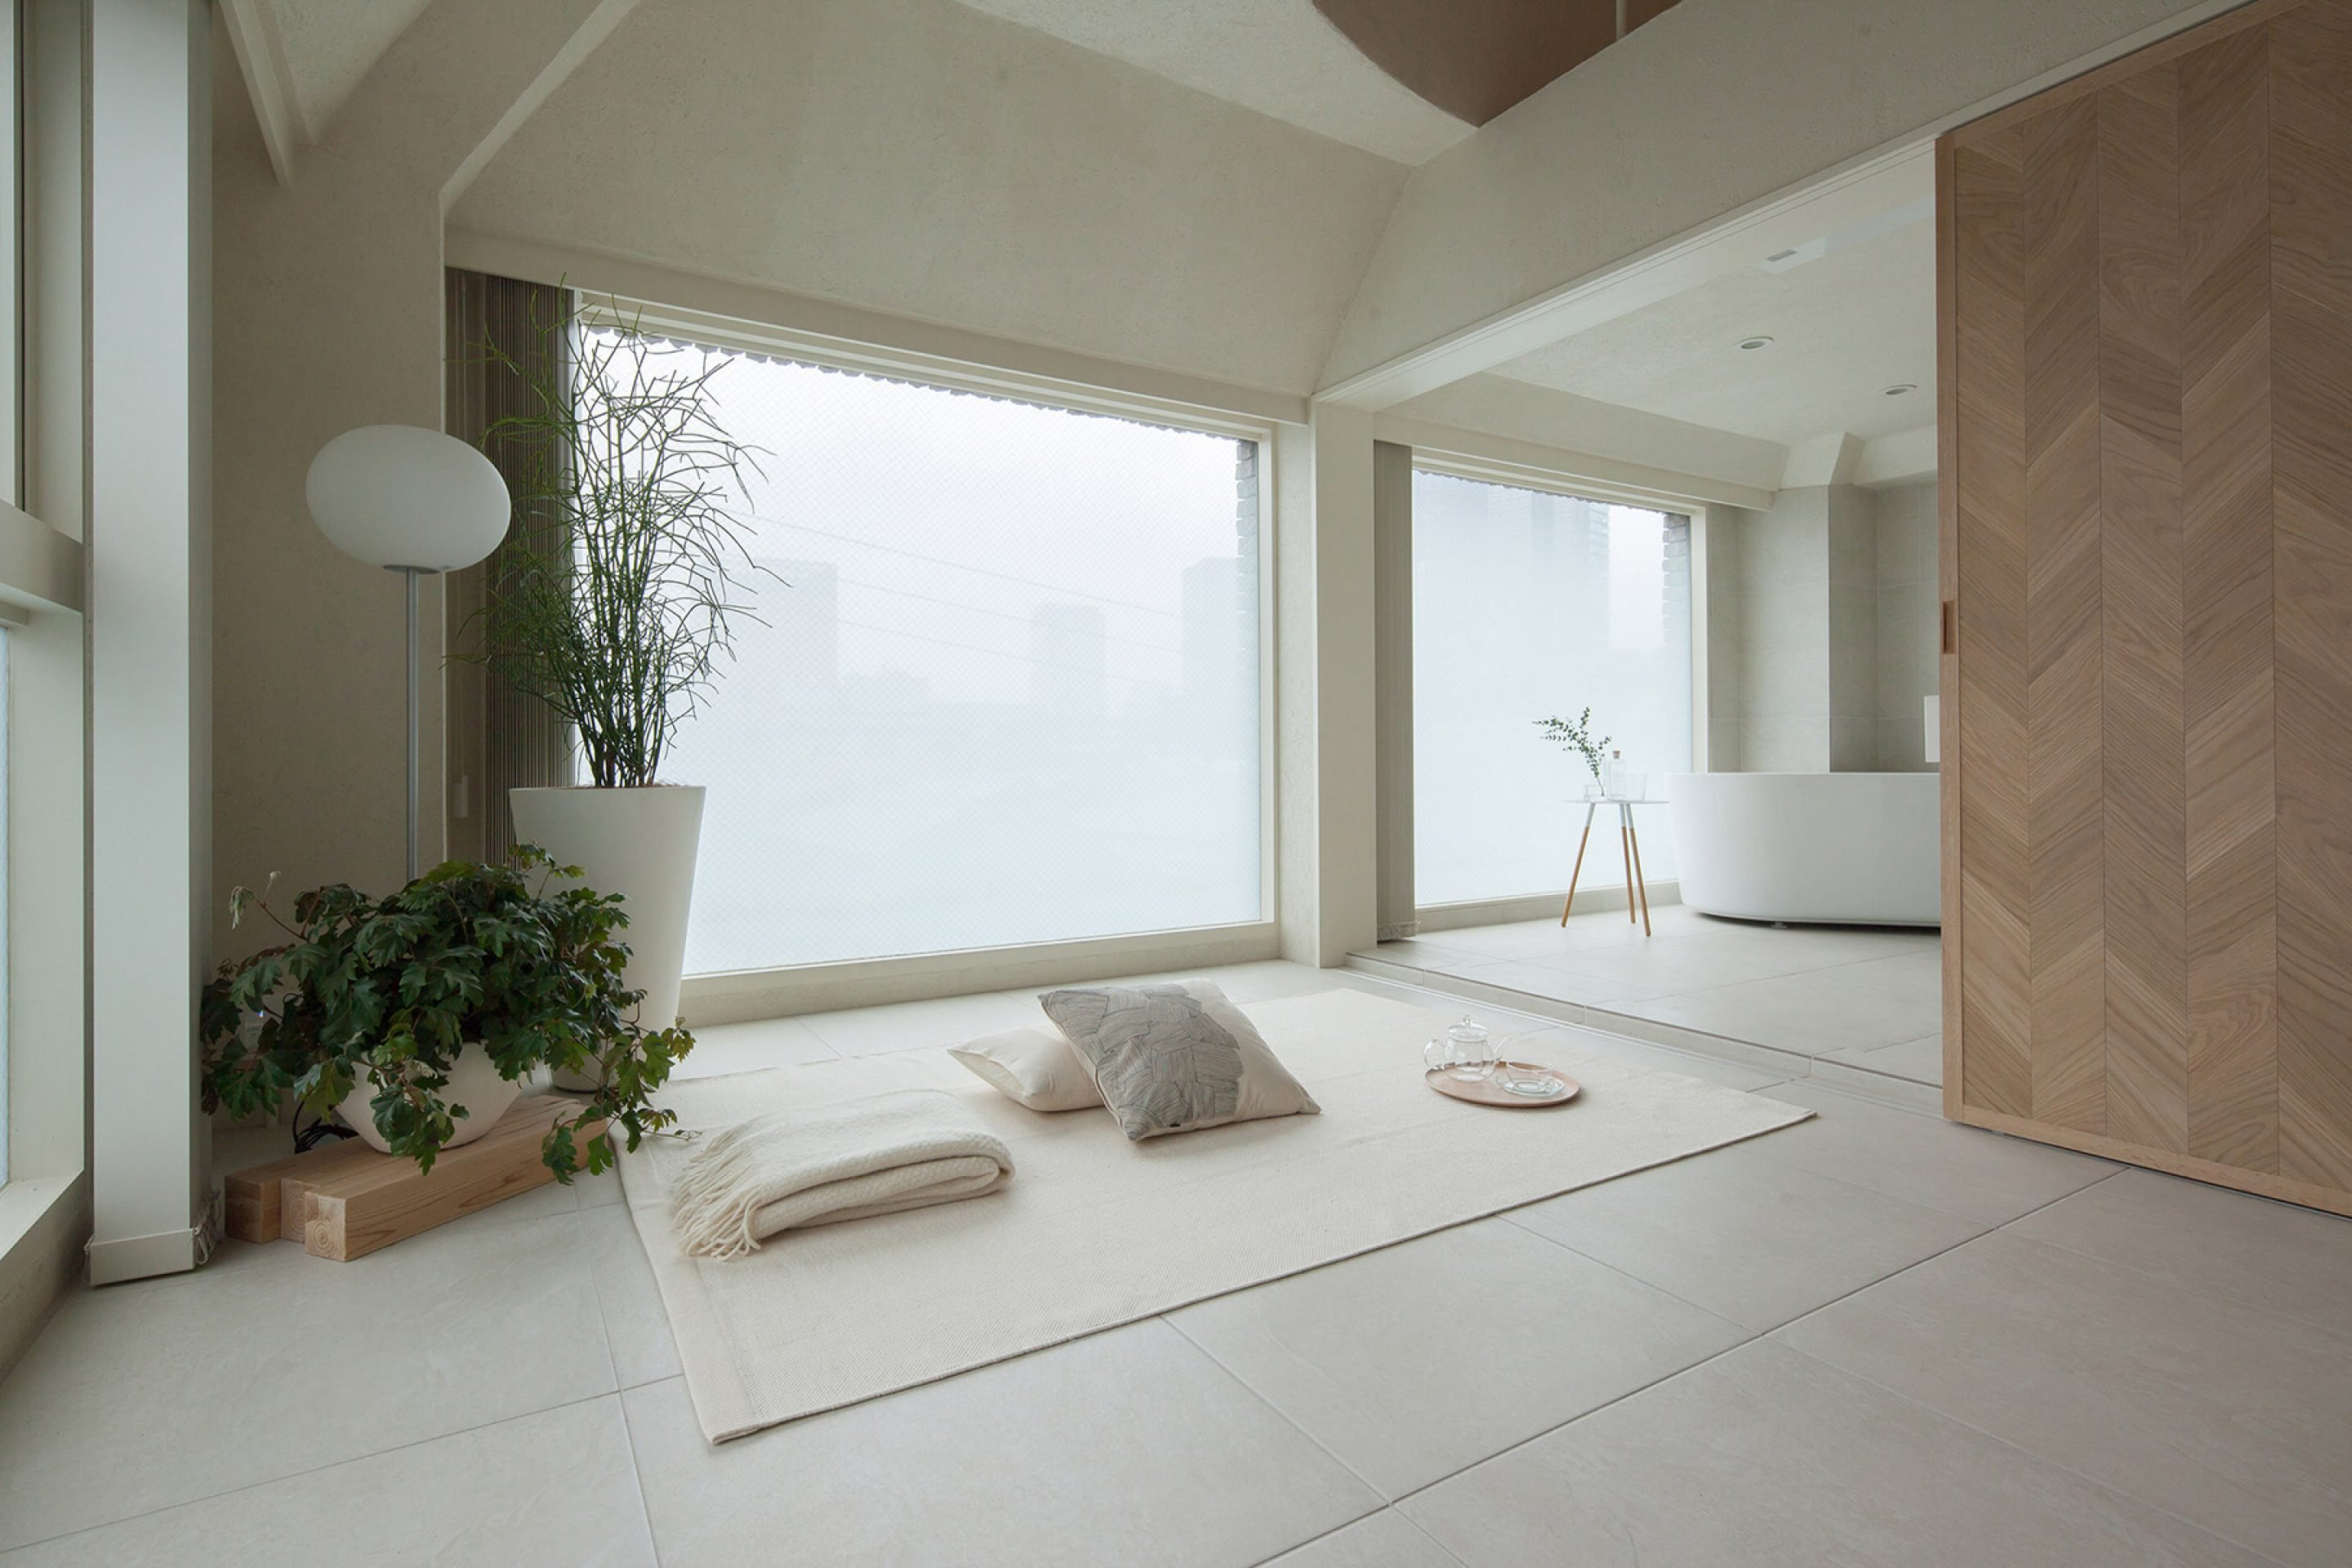 The Serene Ambiance Of The Shibuya Apartment 402 Is A Breath Of Fresh Air  And Calm, Compared To The Fast Paced World That Awaits Outside.